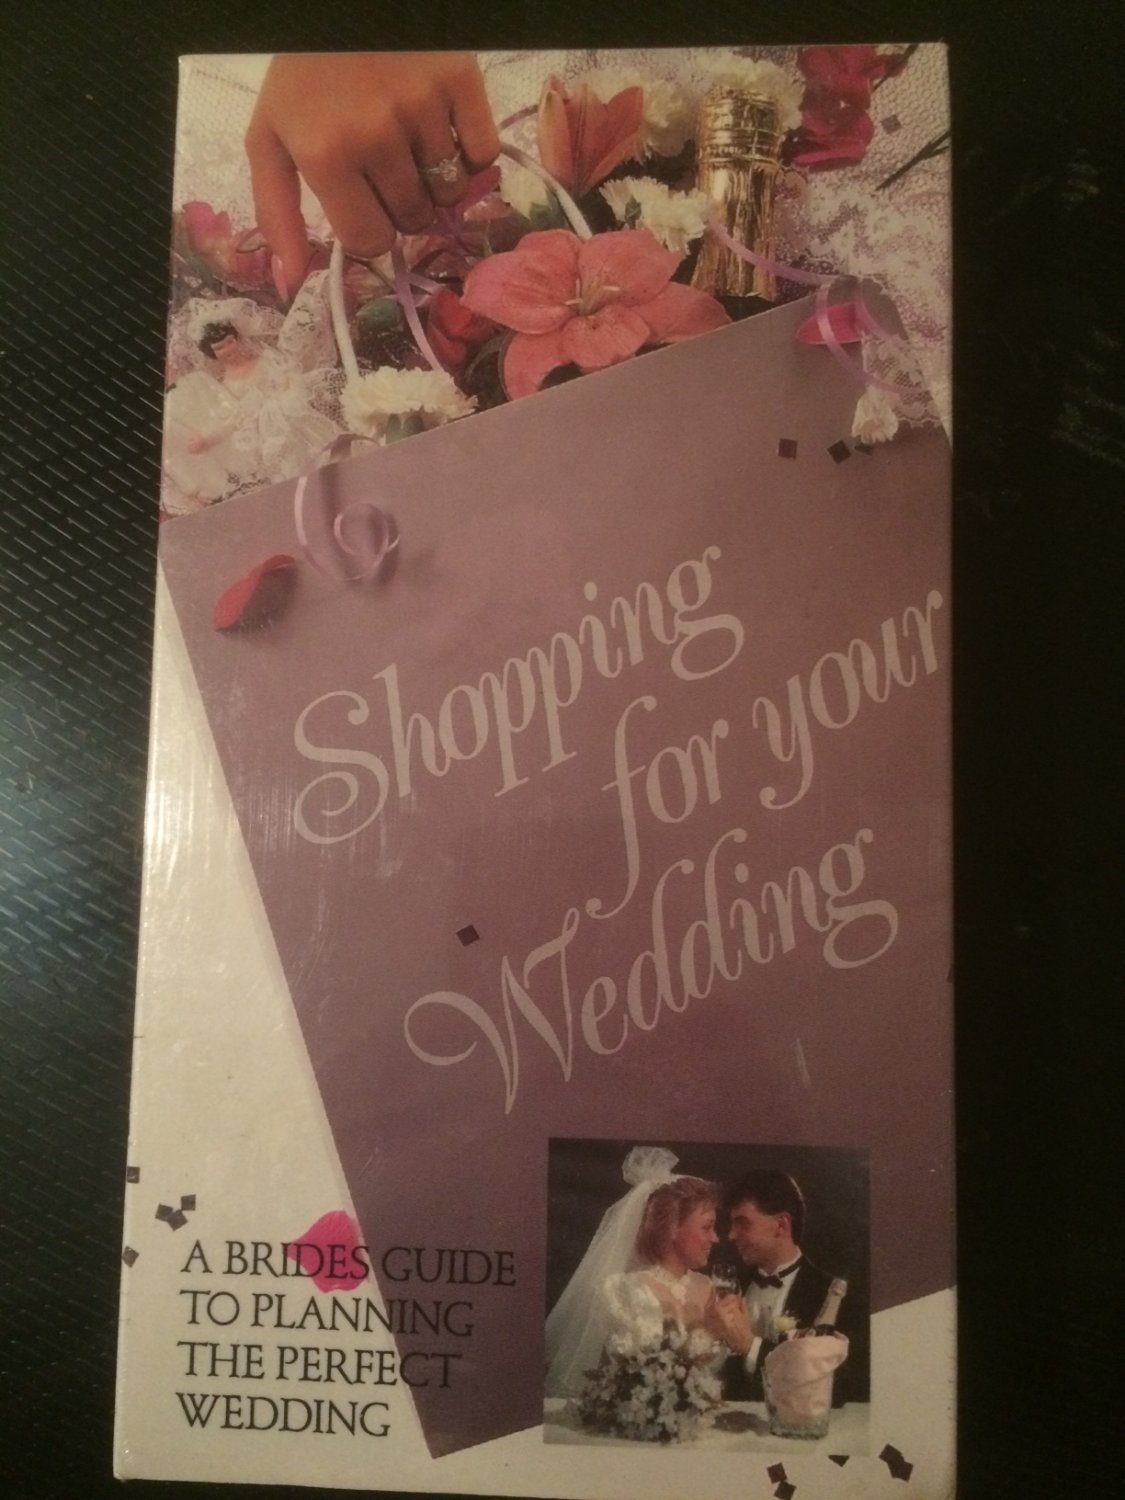 VHS - Shopping for your Wedding - BRAND NEW - NOT ON DVD